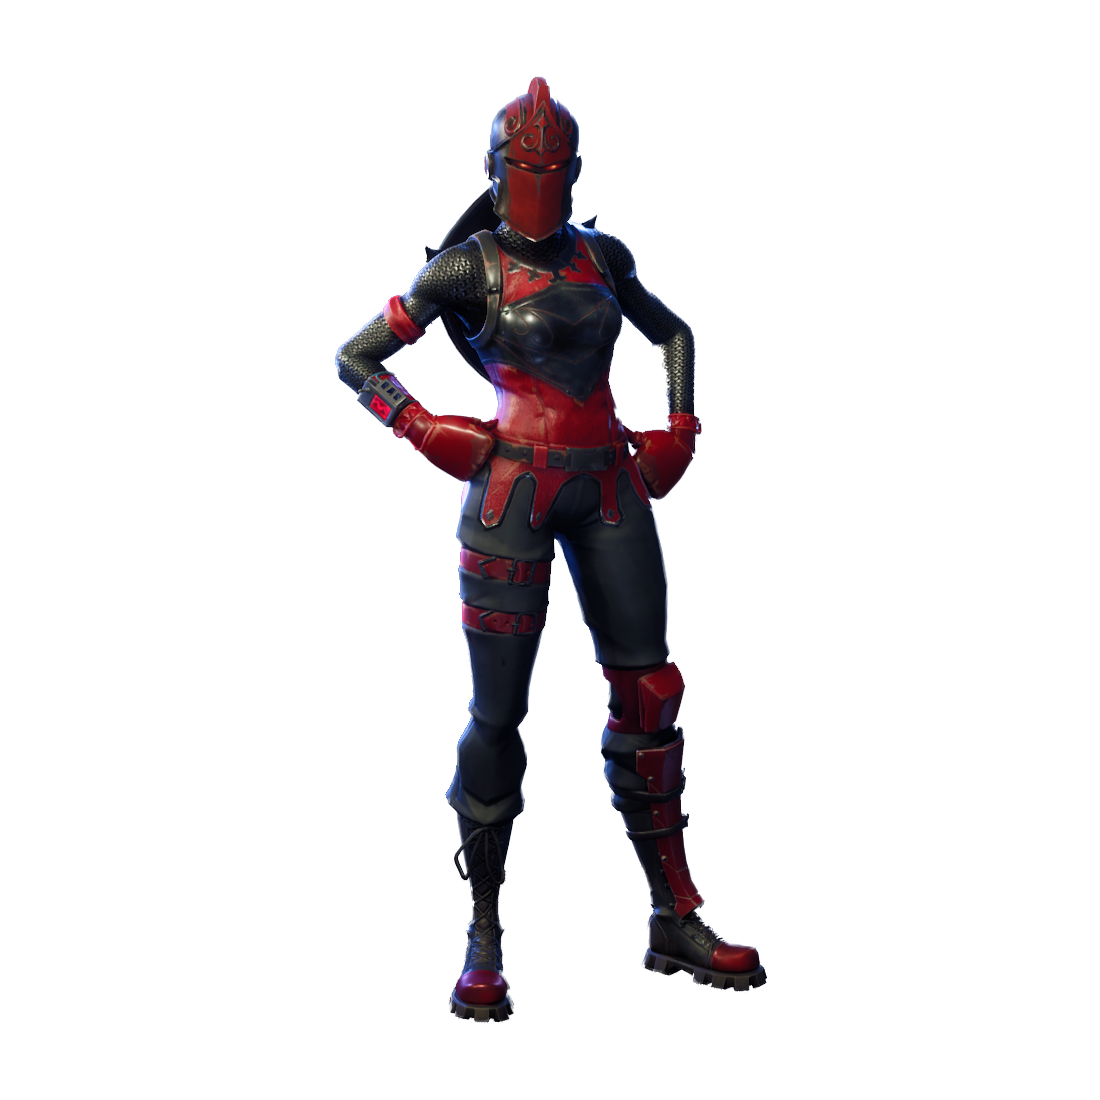 Red Knight Fortnite Pinterest Red Knight Epic Games And Red